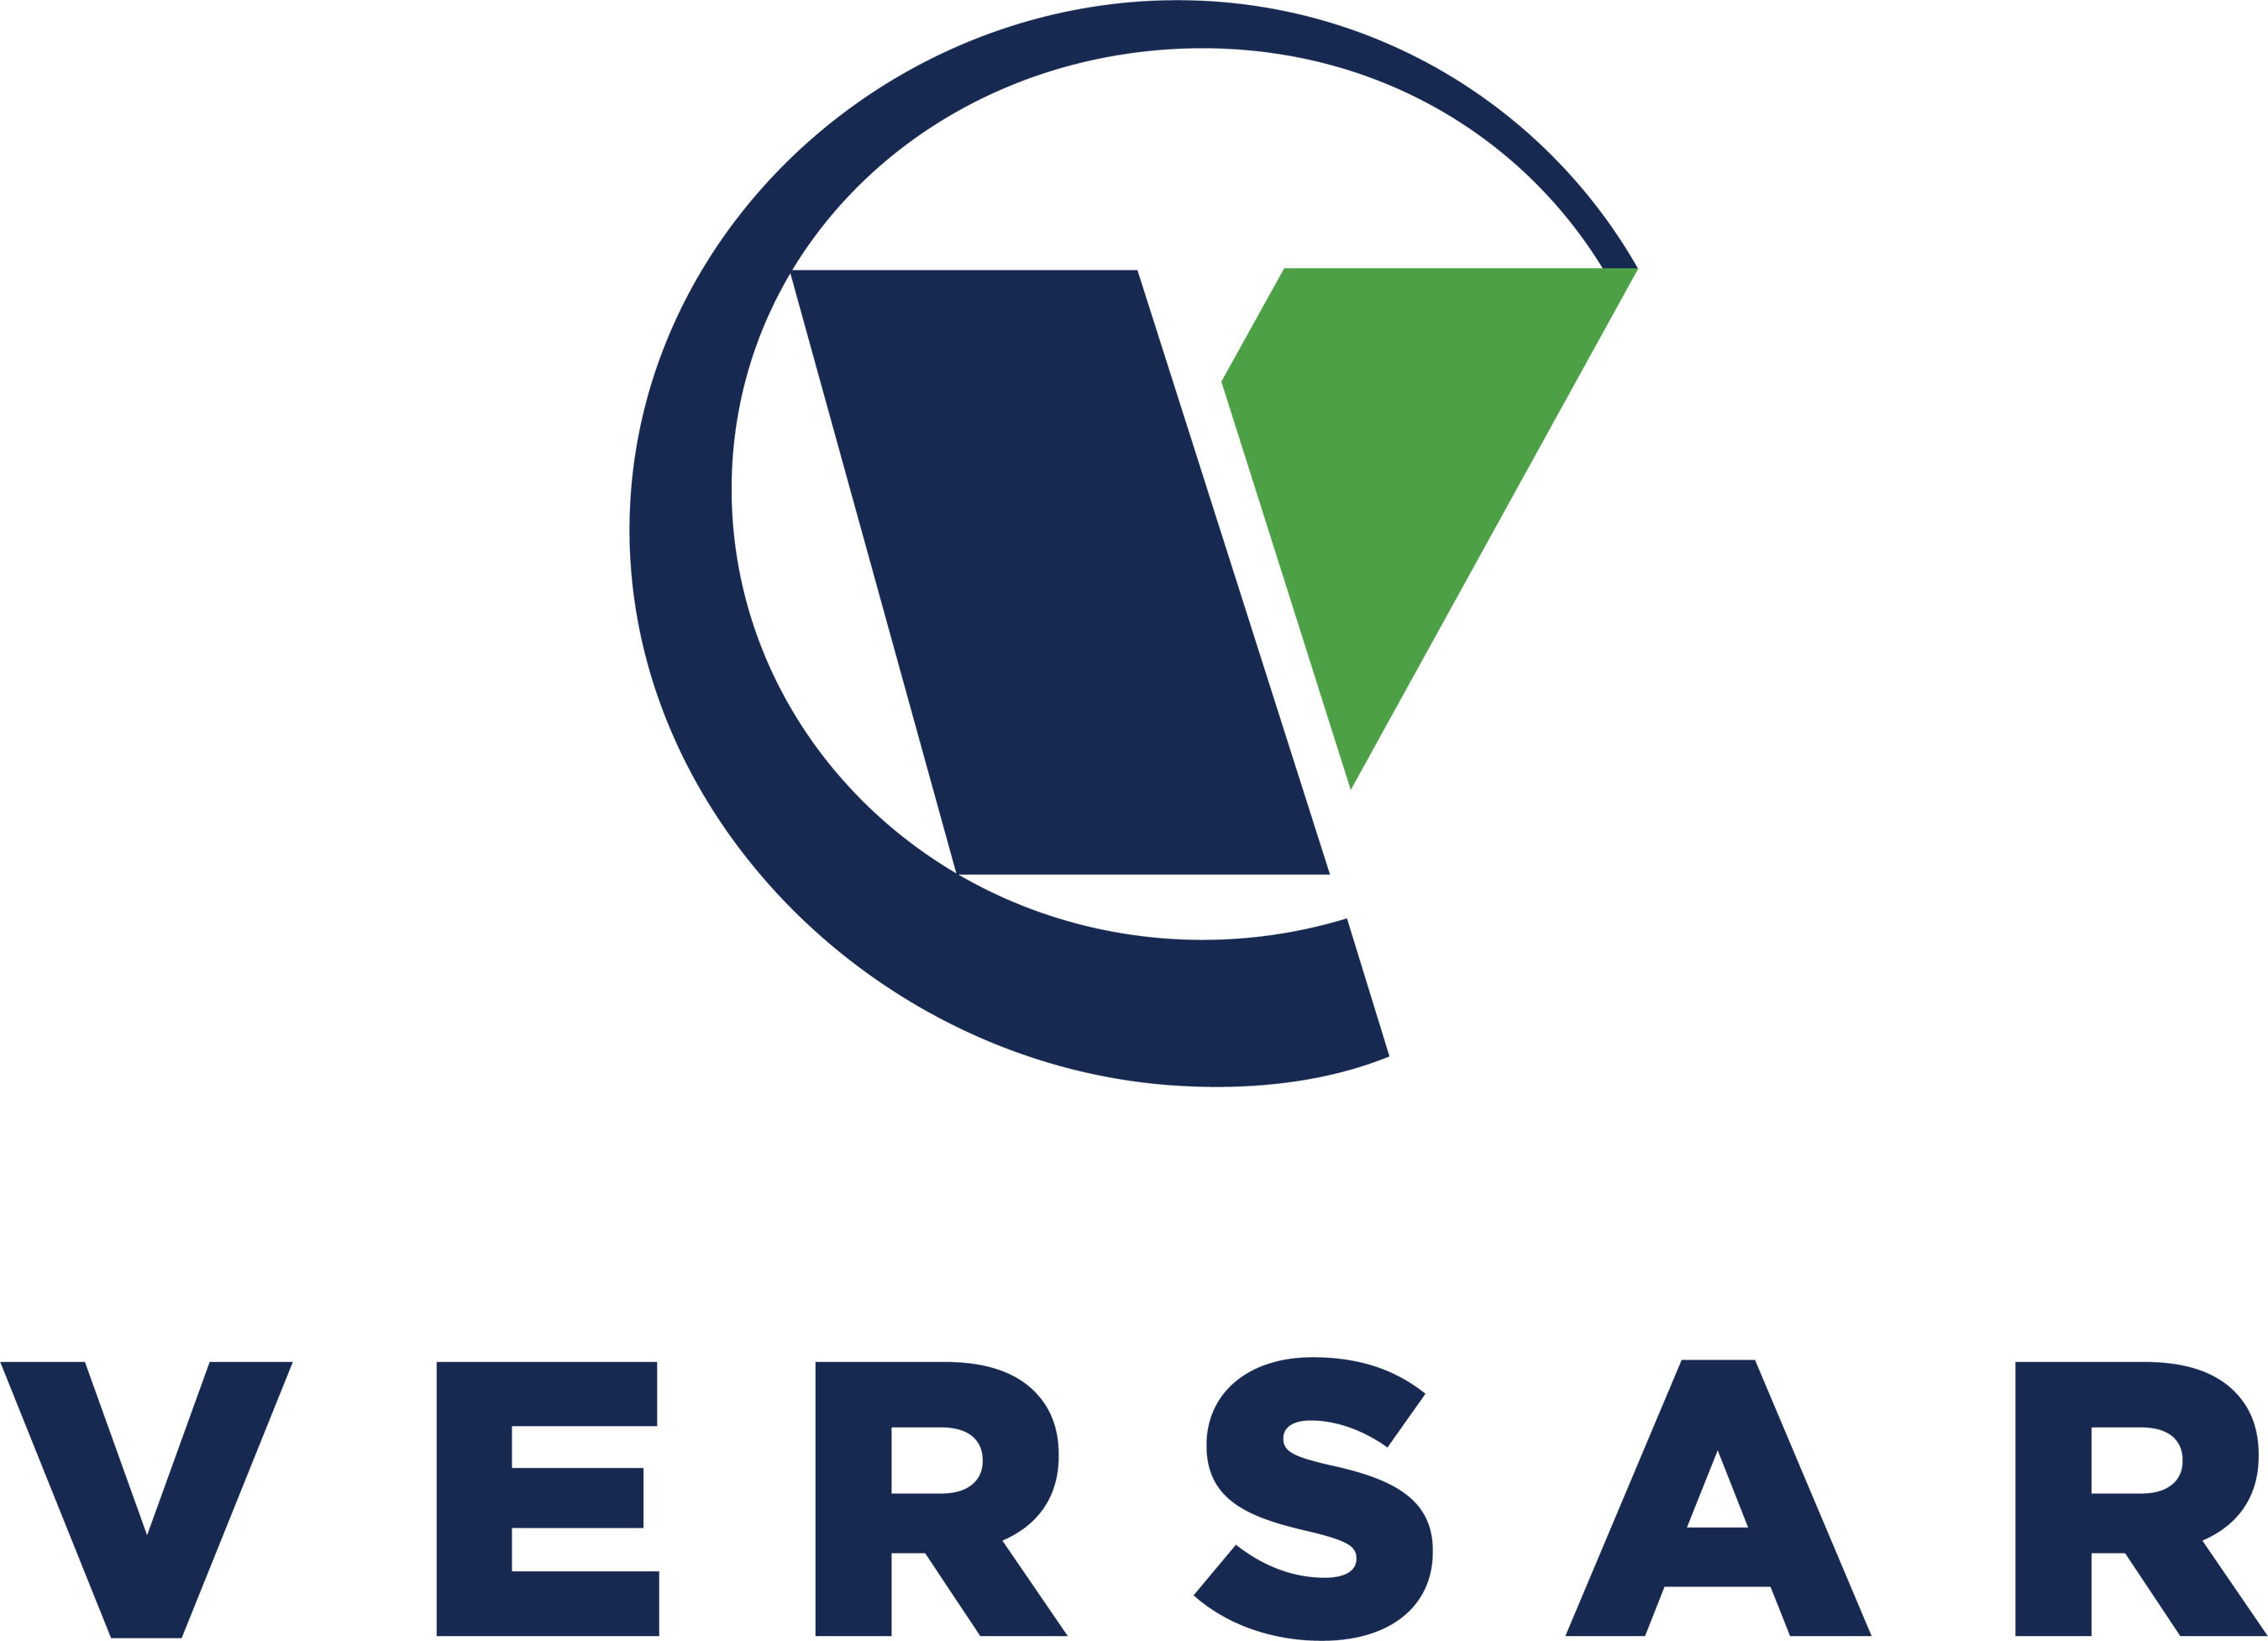 Versar, Inc. Announces Agreement To Acquire Federal Security Integration Business From Johnson Controls